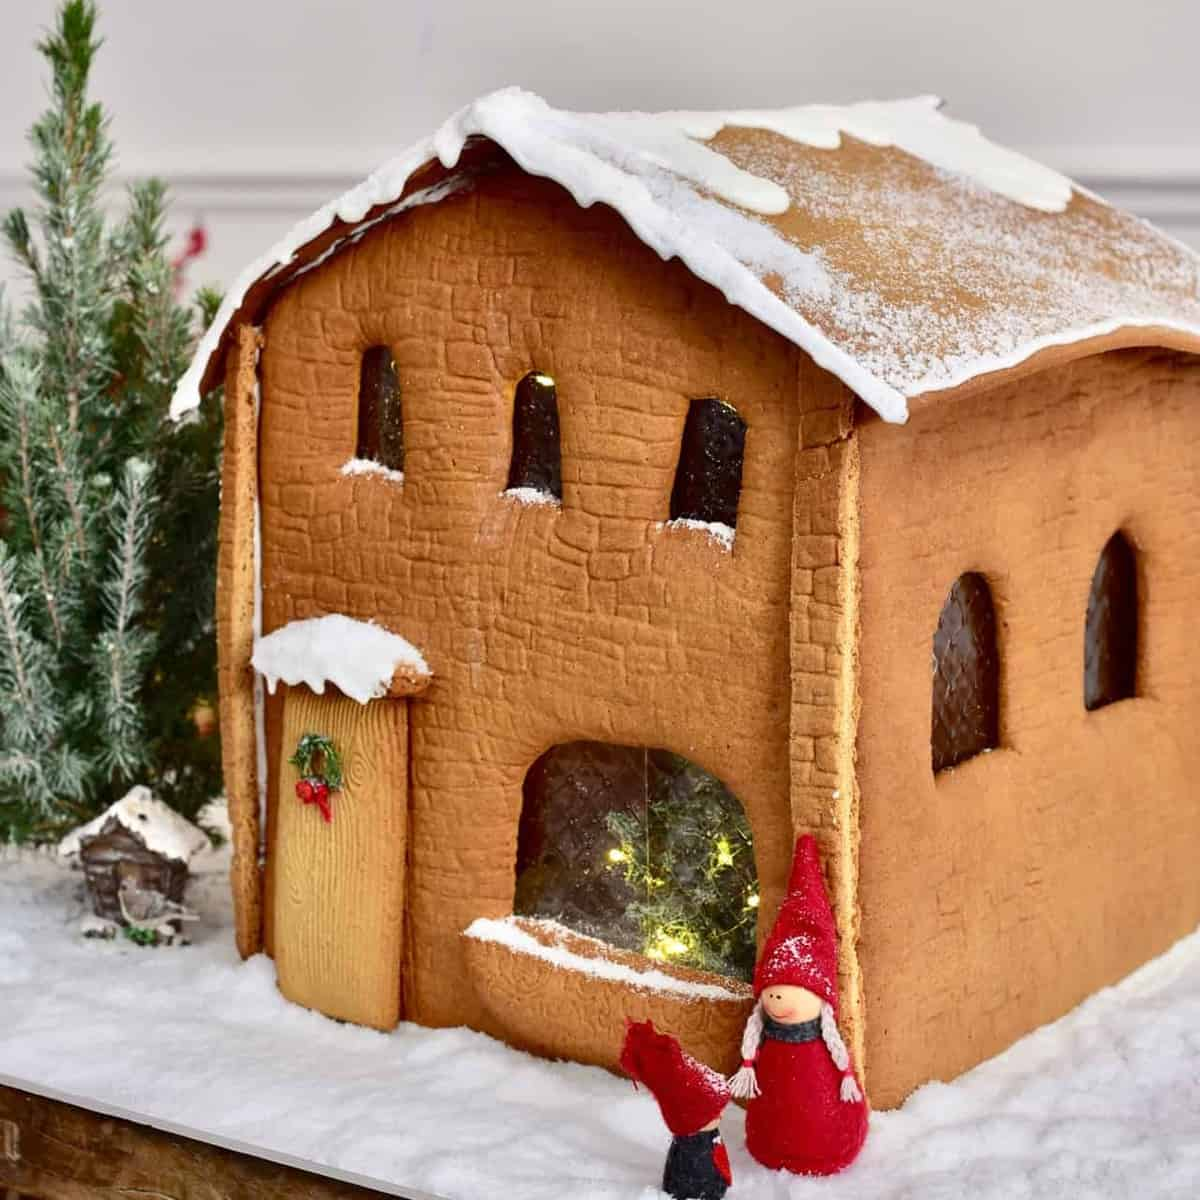 Side-view of gingerbread house with winter character